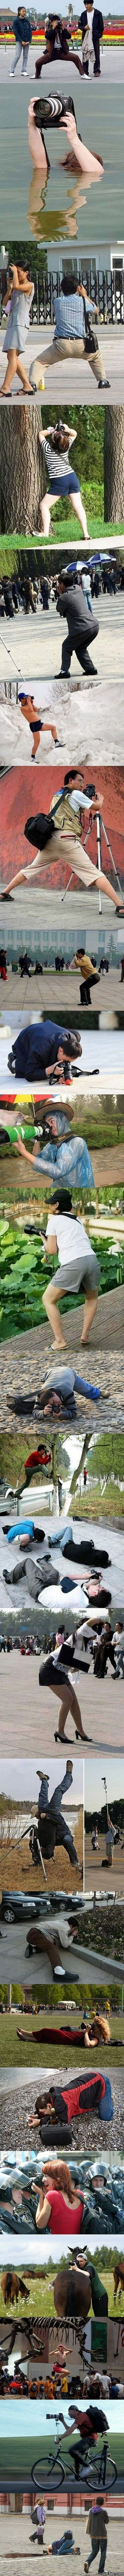 funny-the-many-poses-of-a-photographer